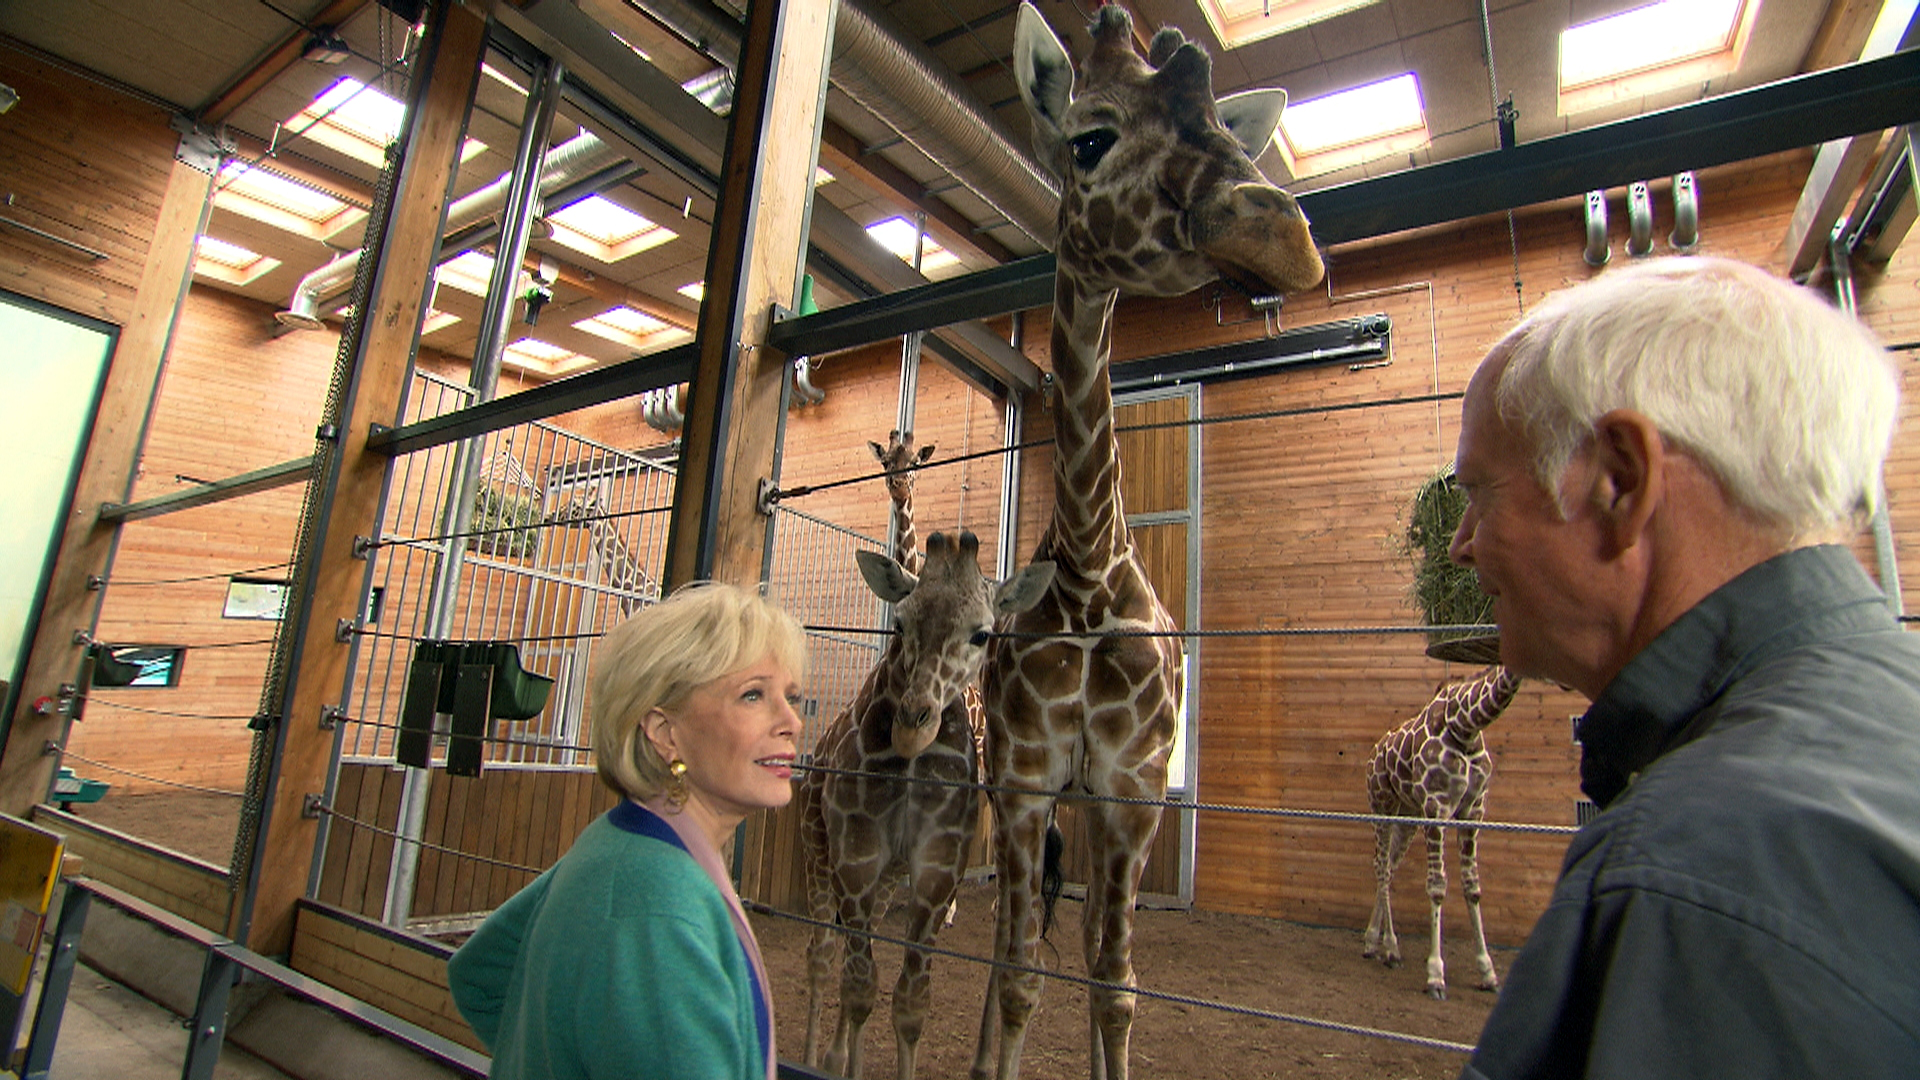 Watch 60 Minutes: Matchmaking for zoo animals - Full show on CBS All Access